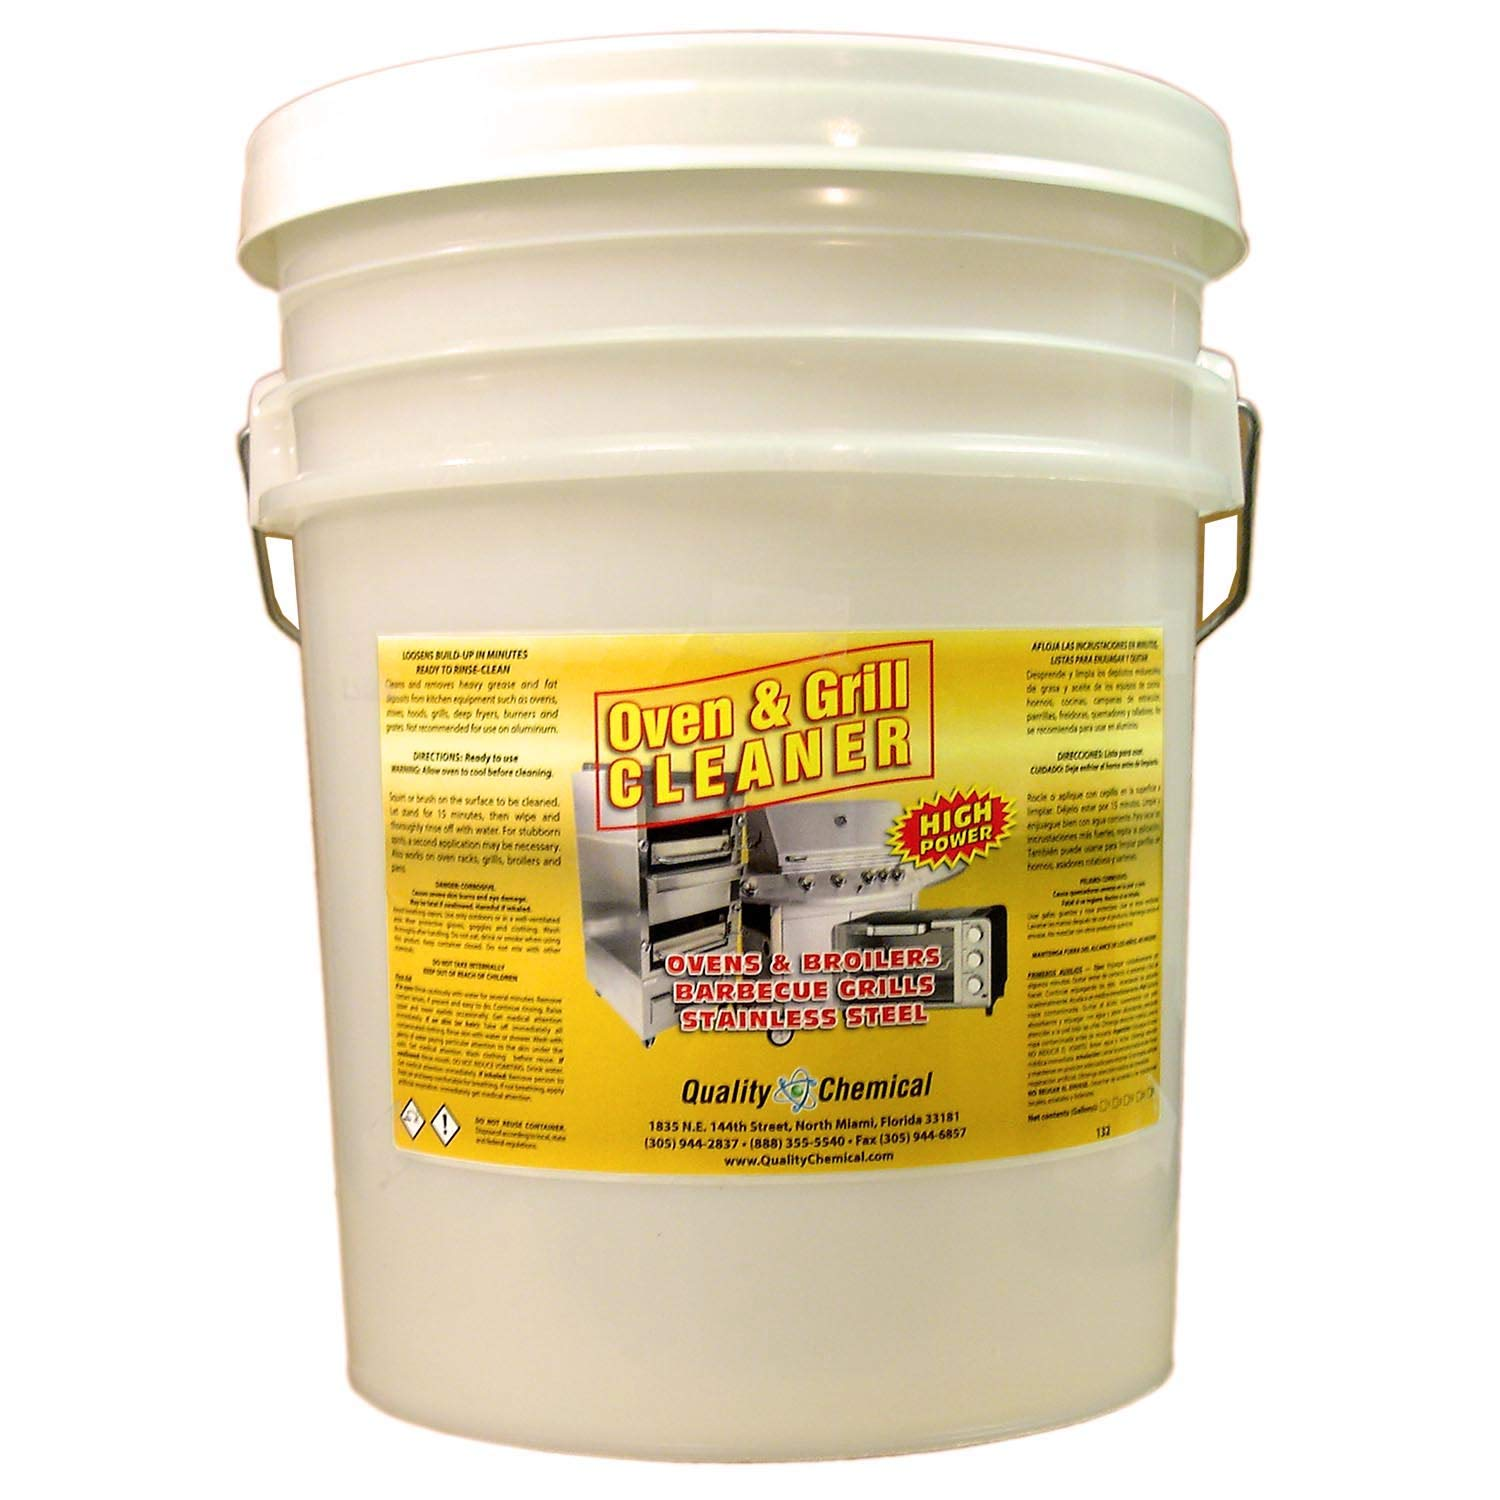 Oven & Grill Cleaner Heavy-Duty. High Power! Nothing Stronger.-5 gallon pail by Quality Chemical (Image #1)